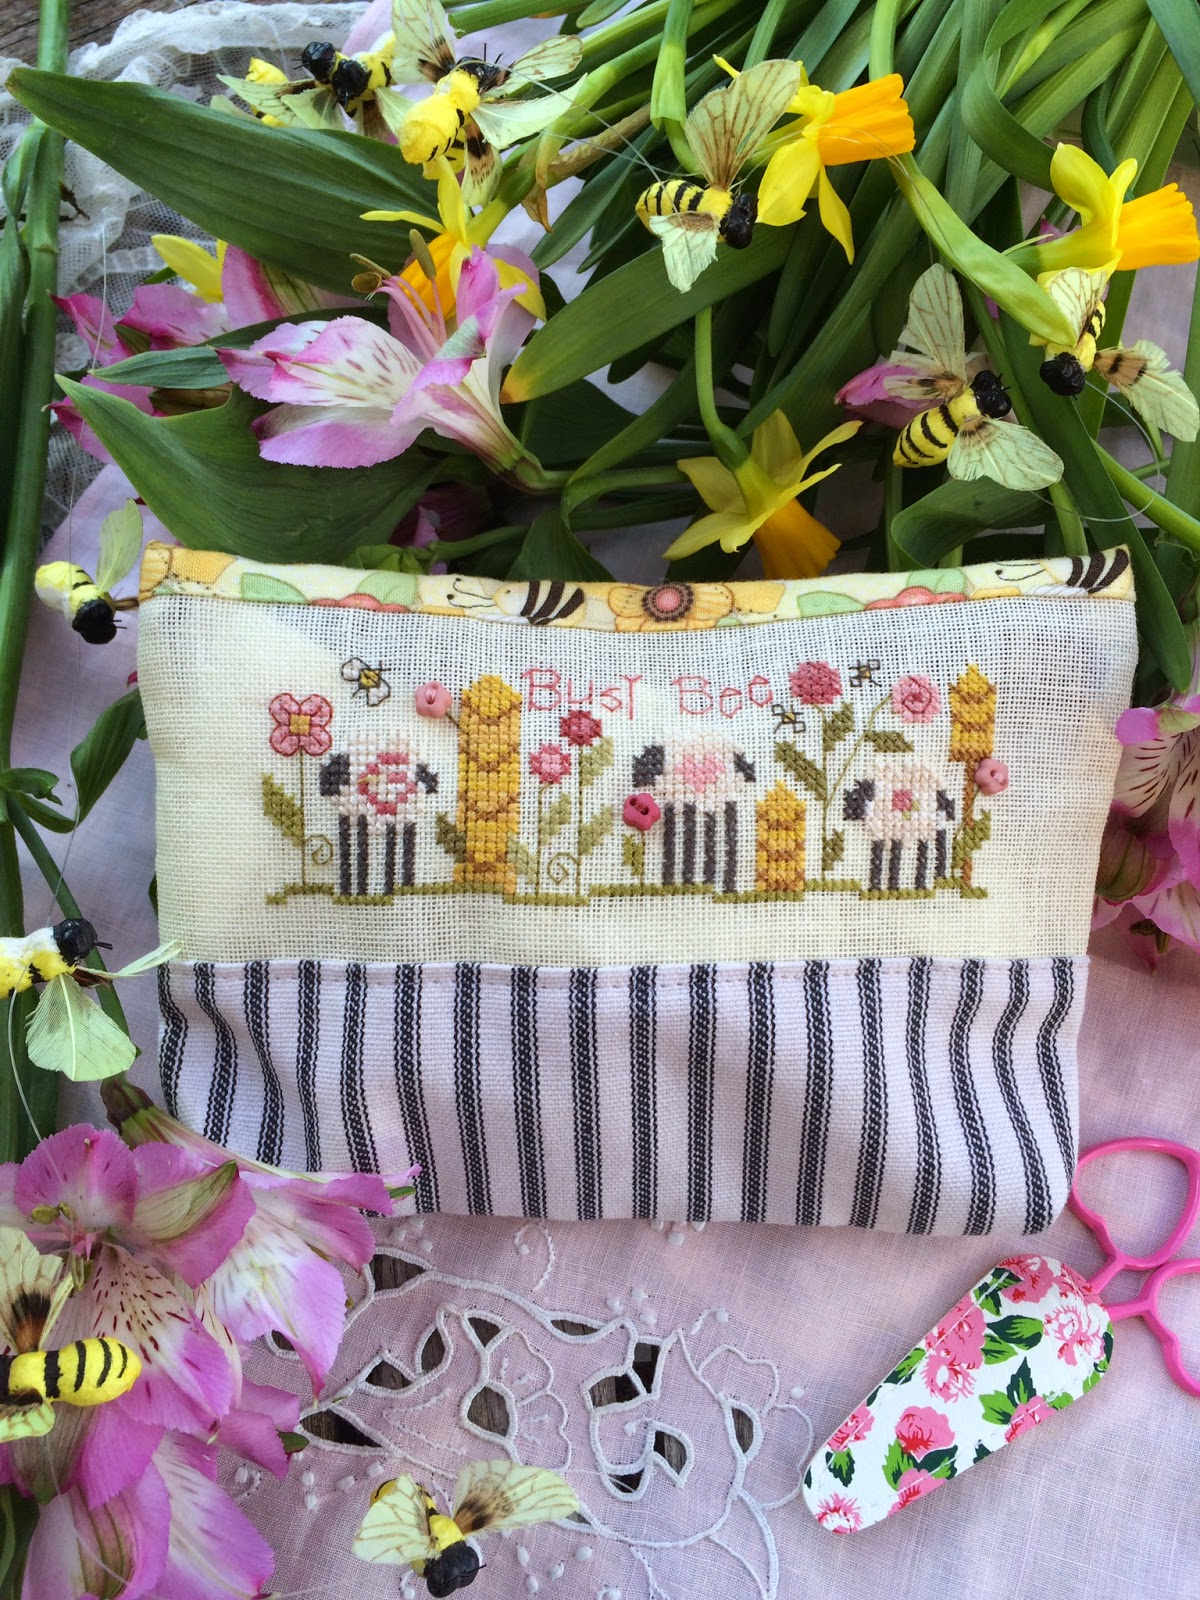 Shepherd's Bush - Busy Bee Bag - Cross Stitch Kit